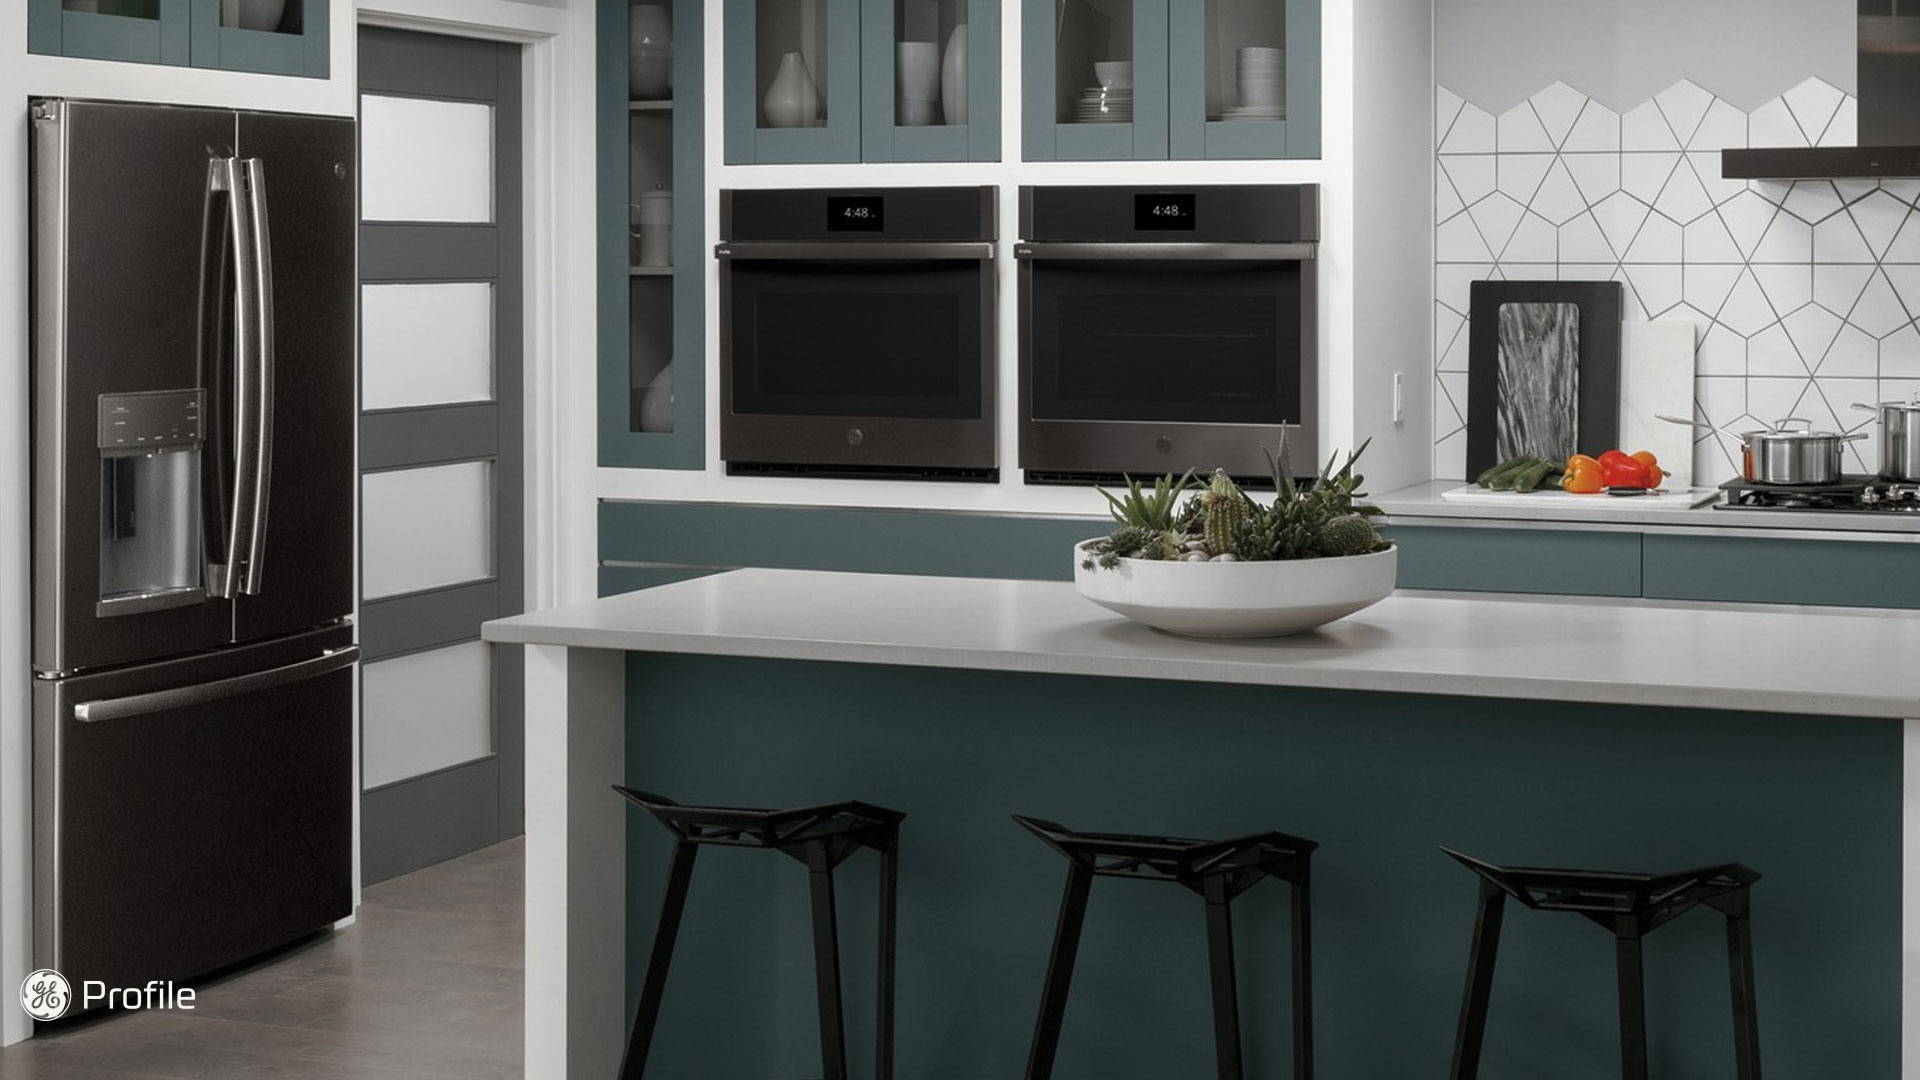 GE Profile Inchyra Blue Kitchen with Island